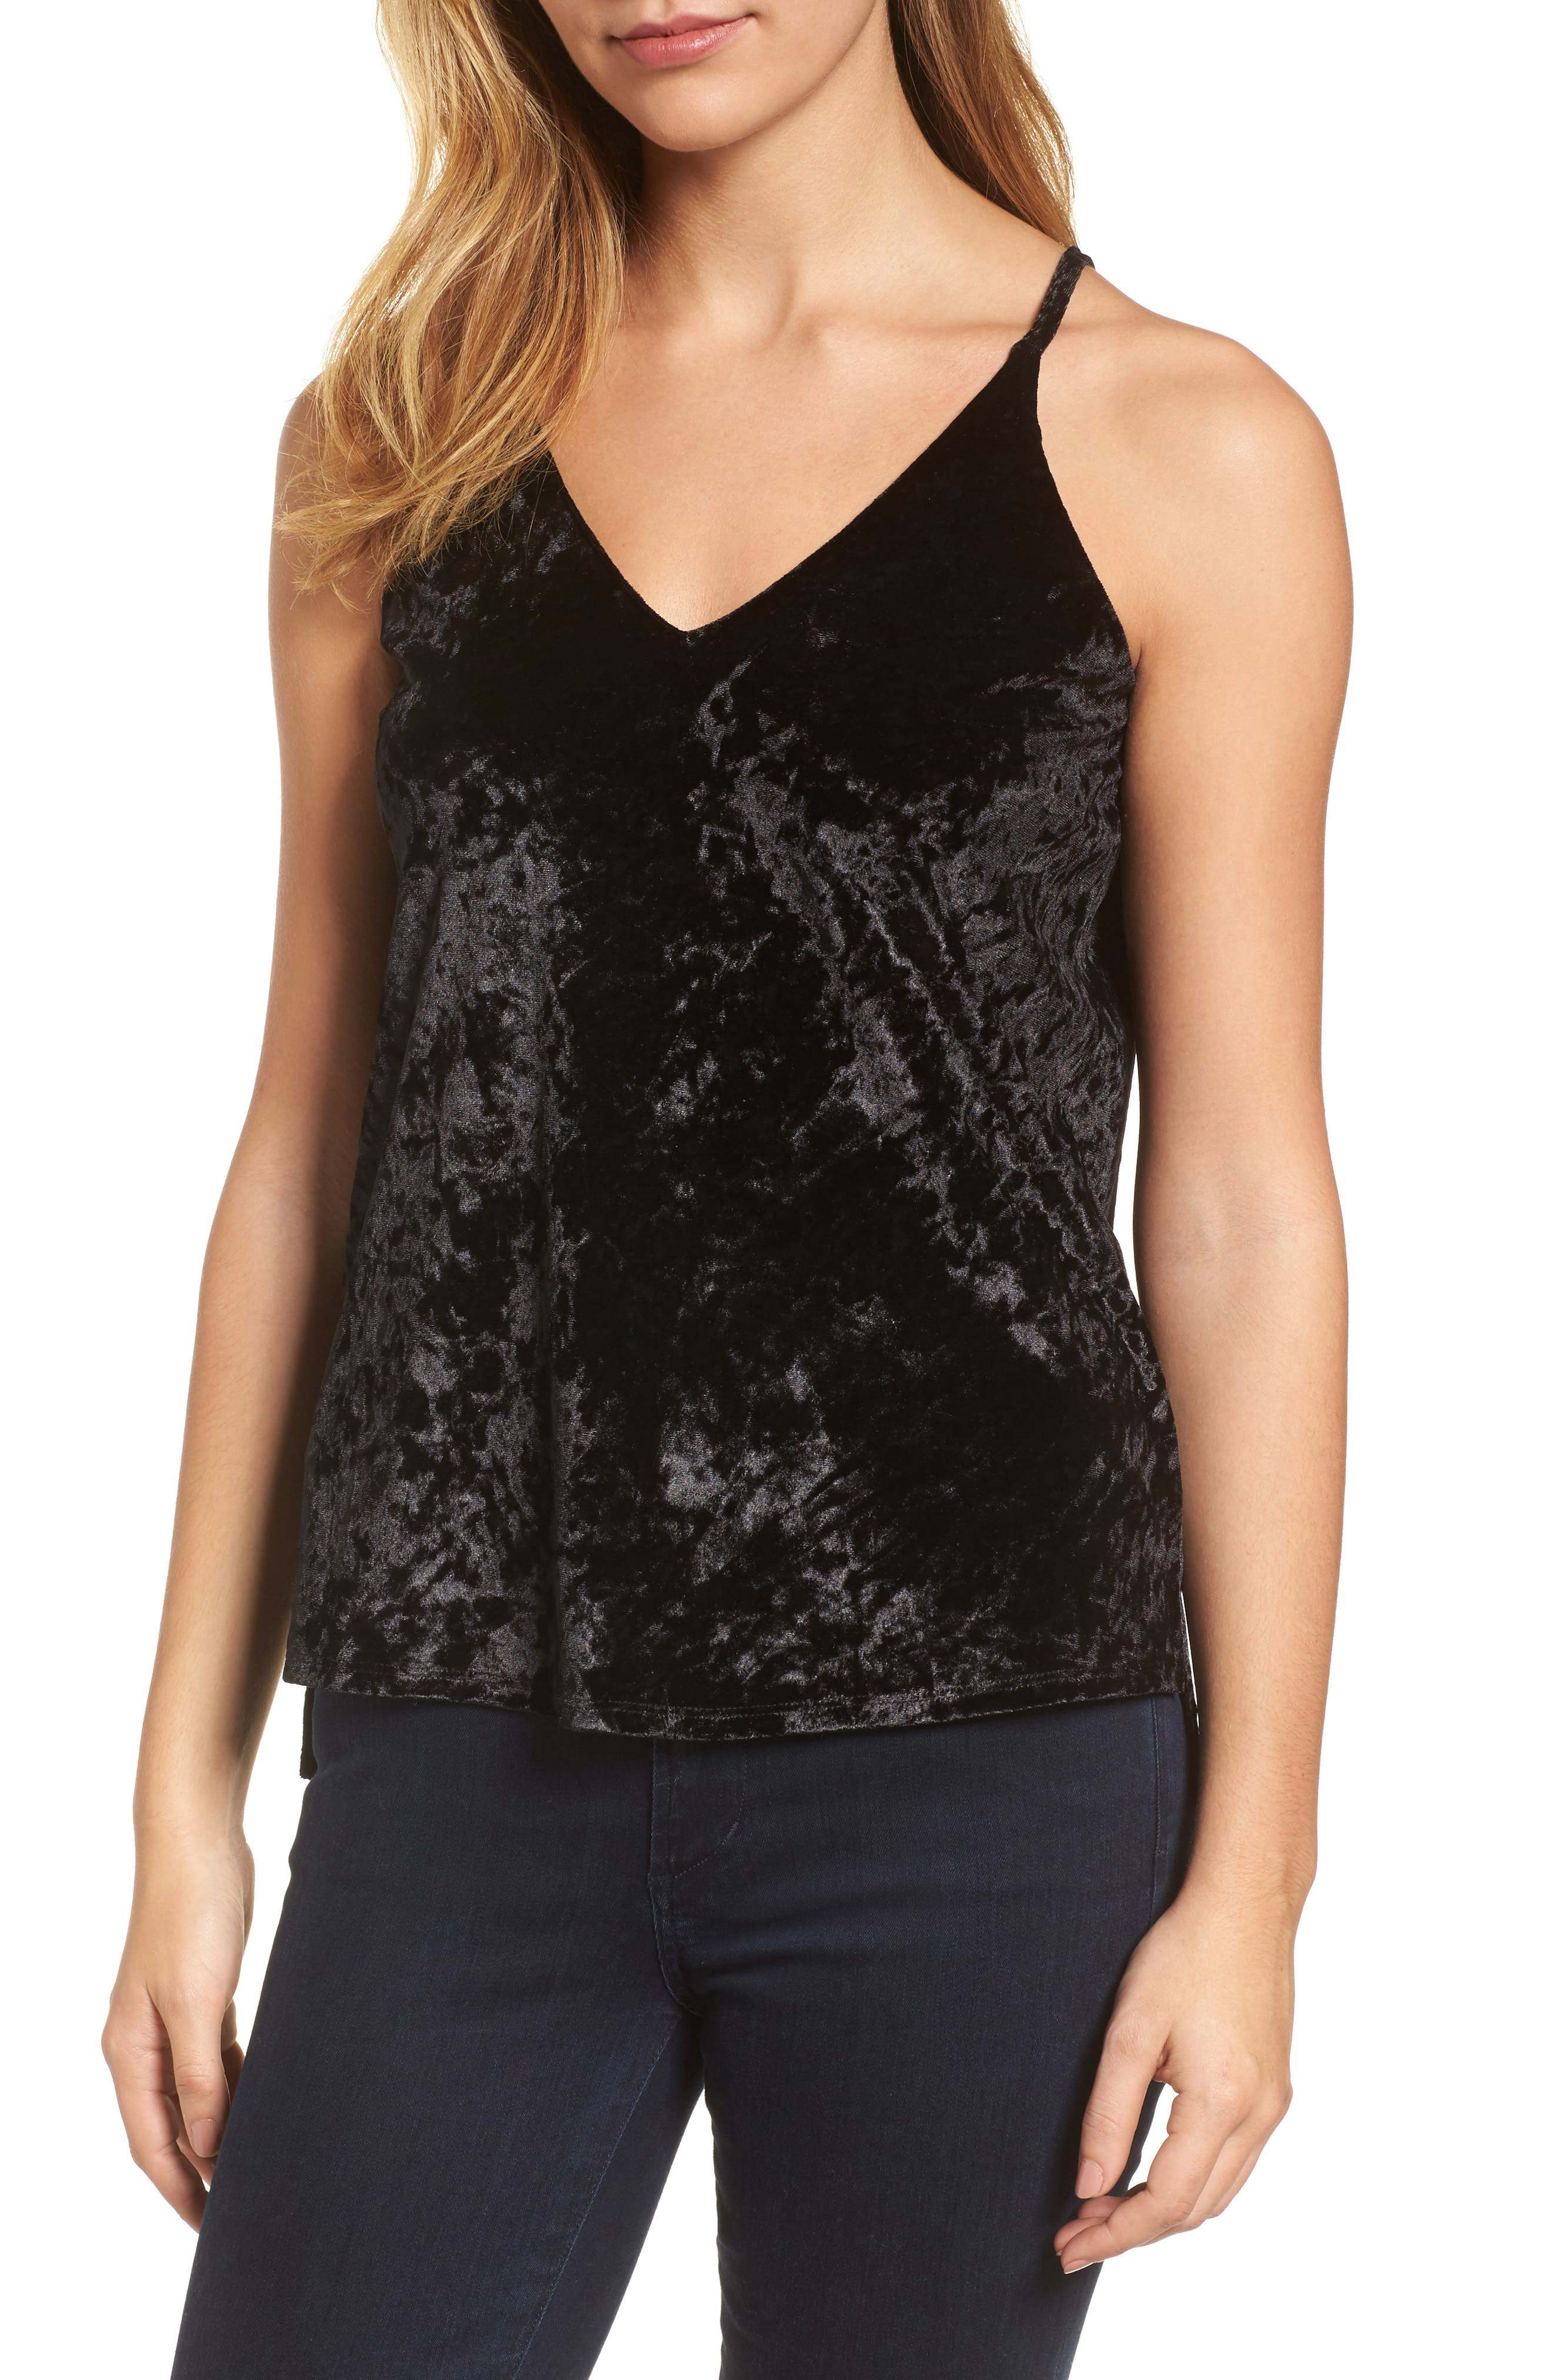 Billy T Crushed Velvet Camisole